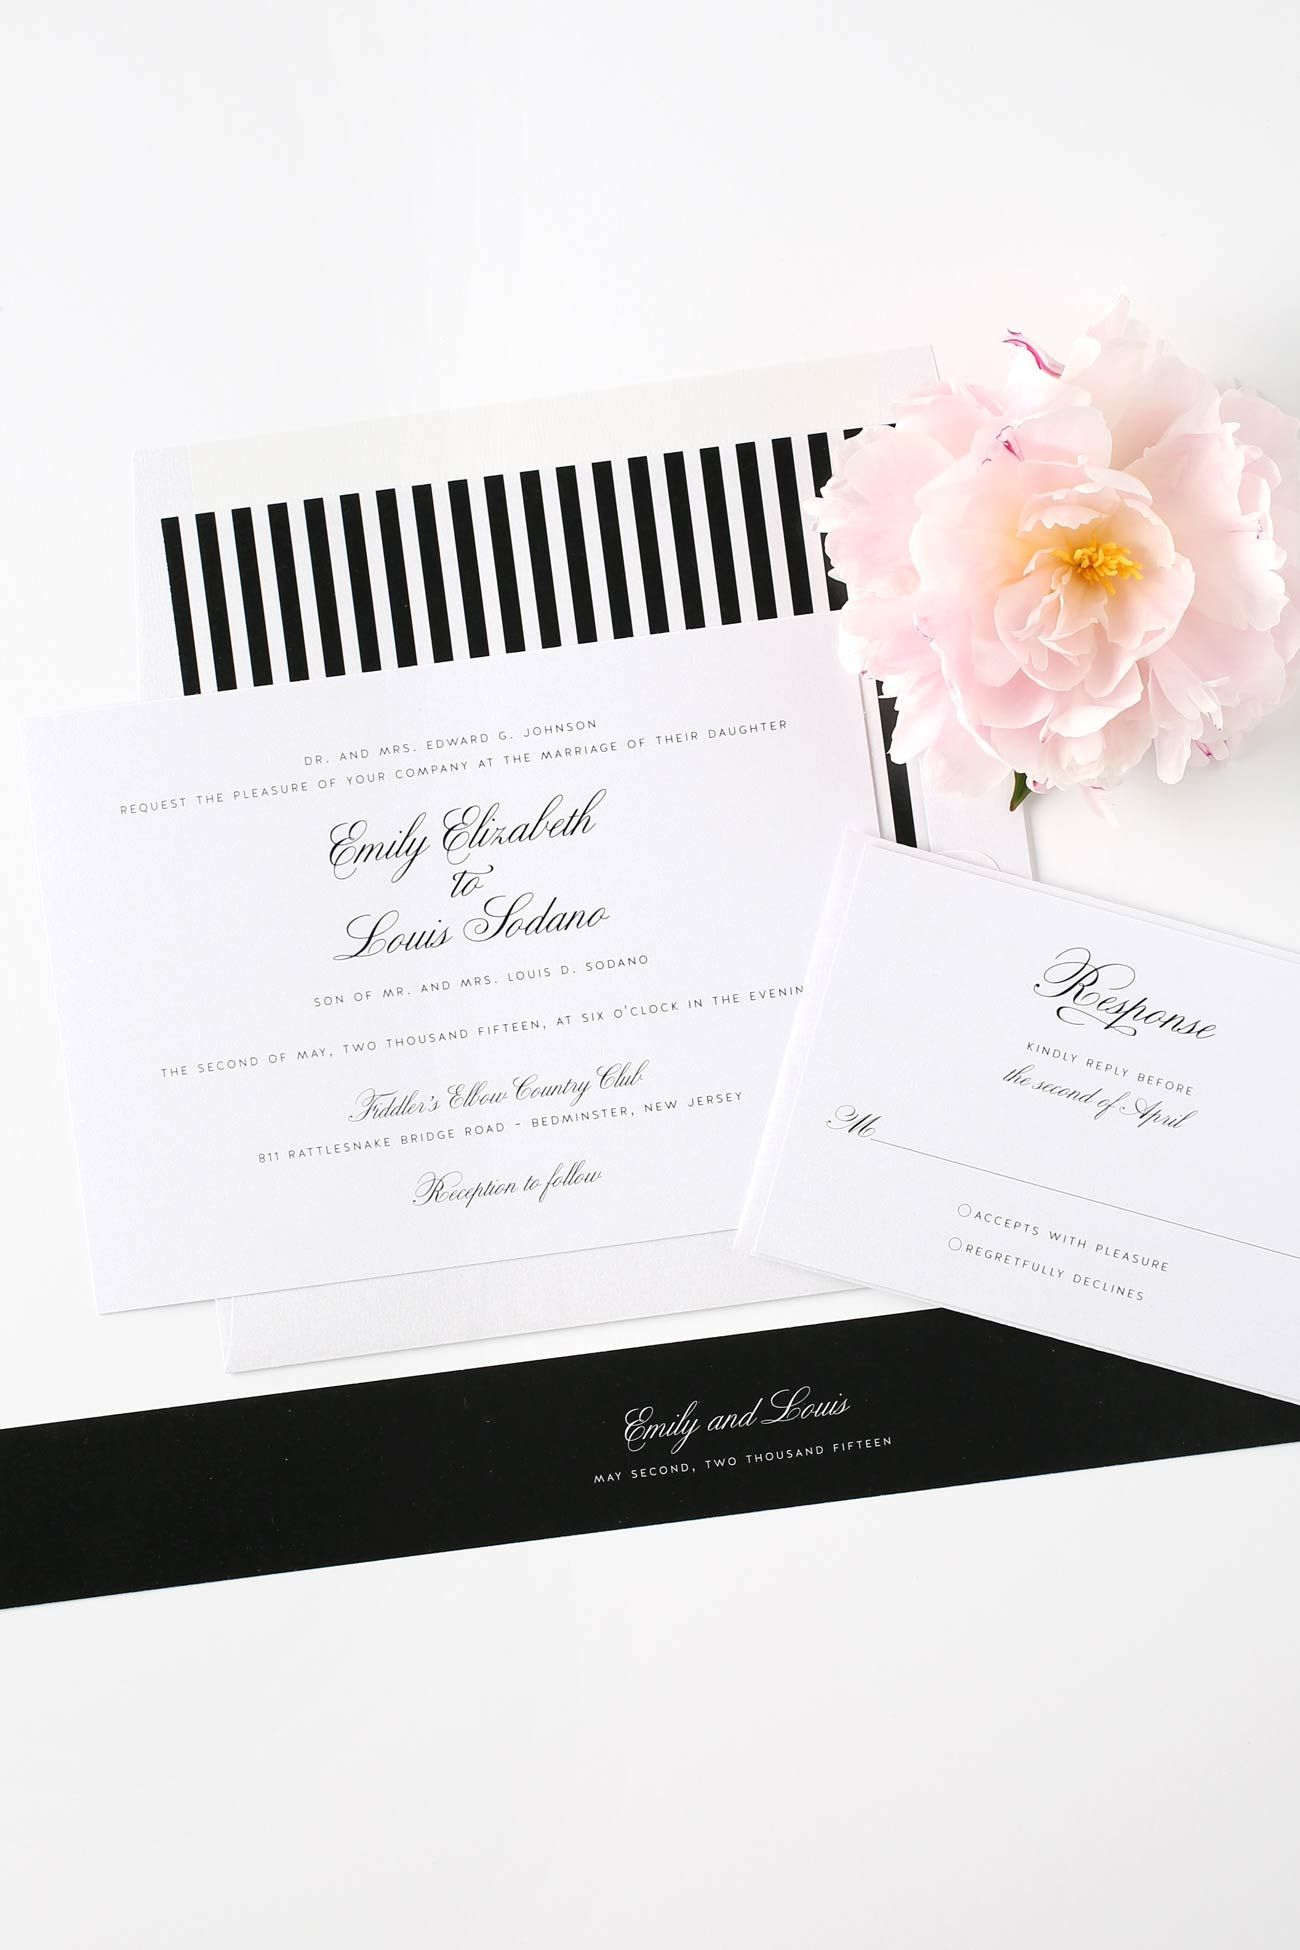 sample wedding invitation email wording to colleagues%0A     s Wedding Invitations in Black   White